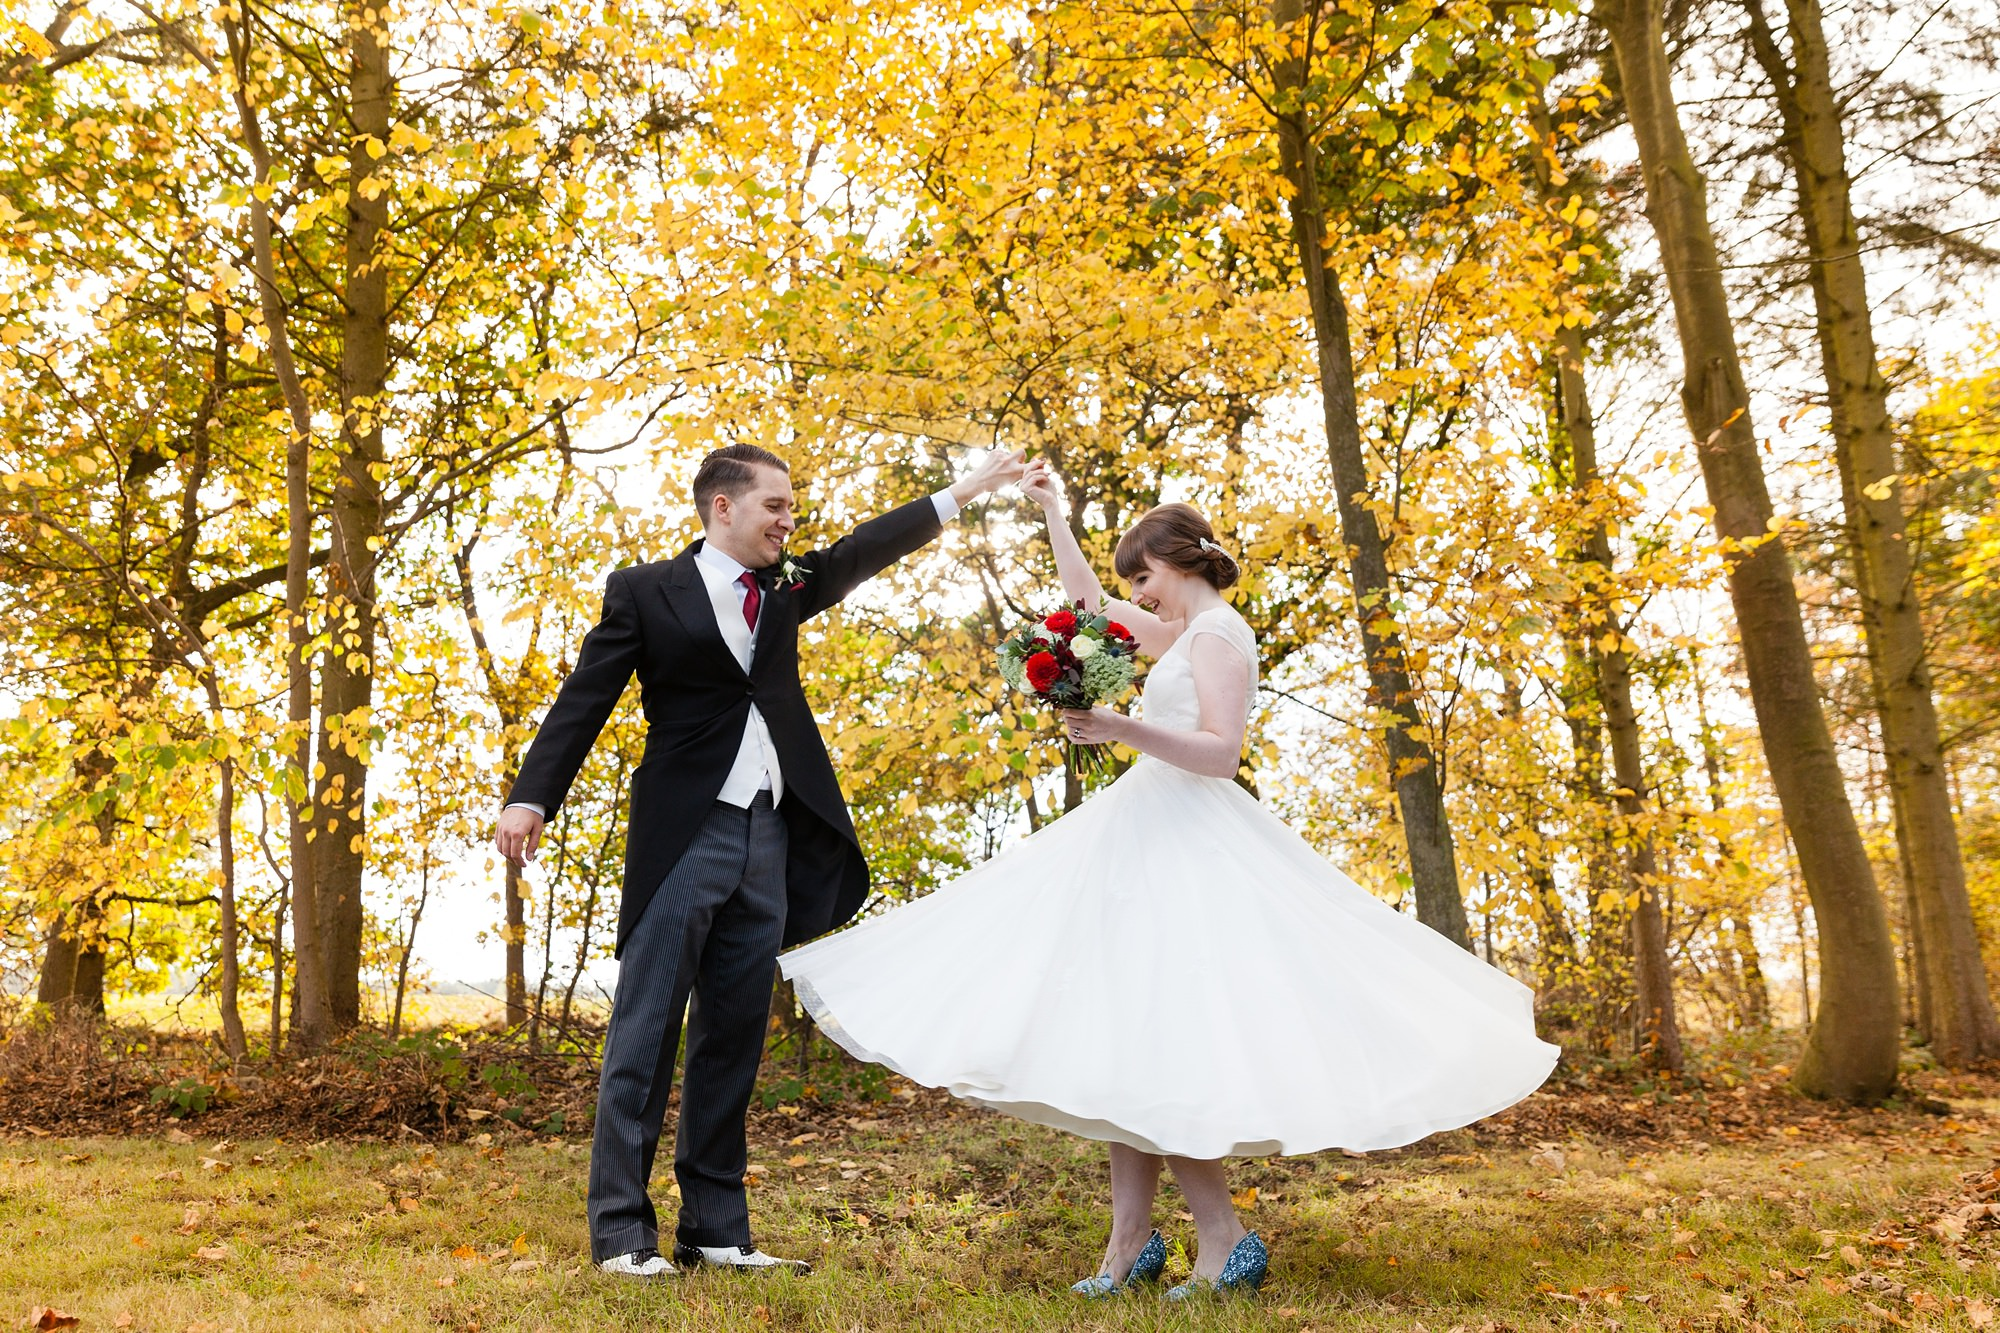 Groom twirls bride in yellow leaves Sandburn Hall Wedding Photography